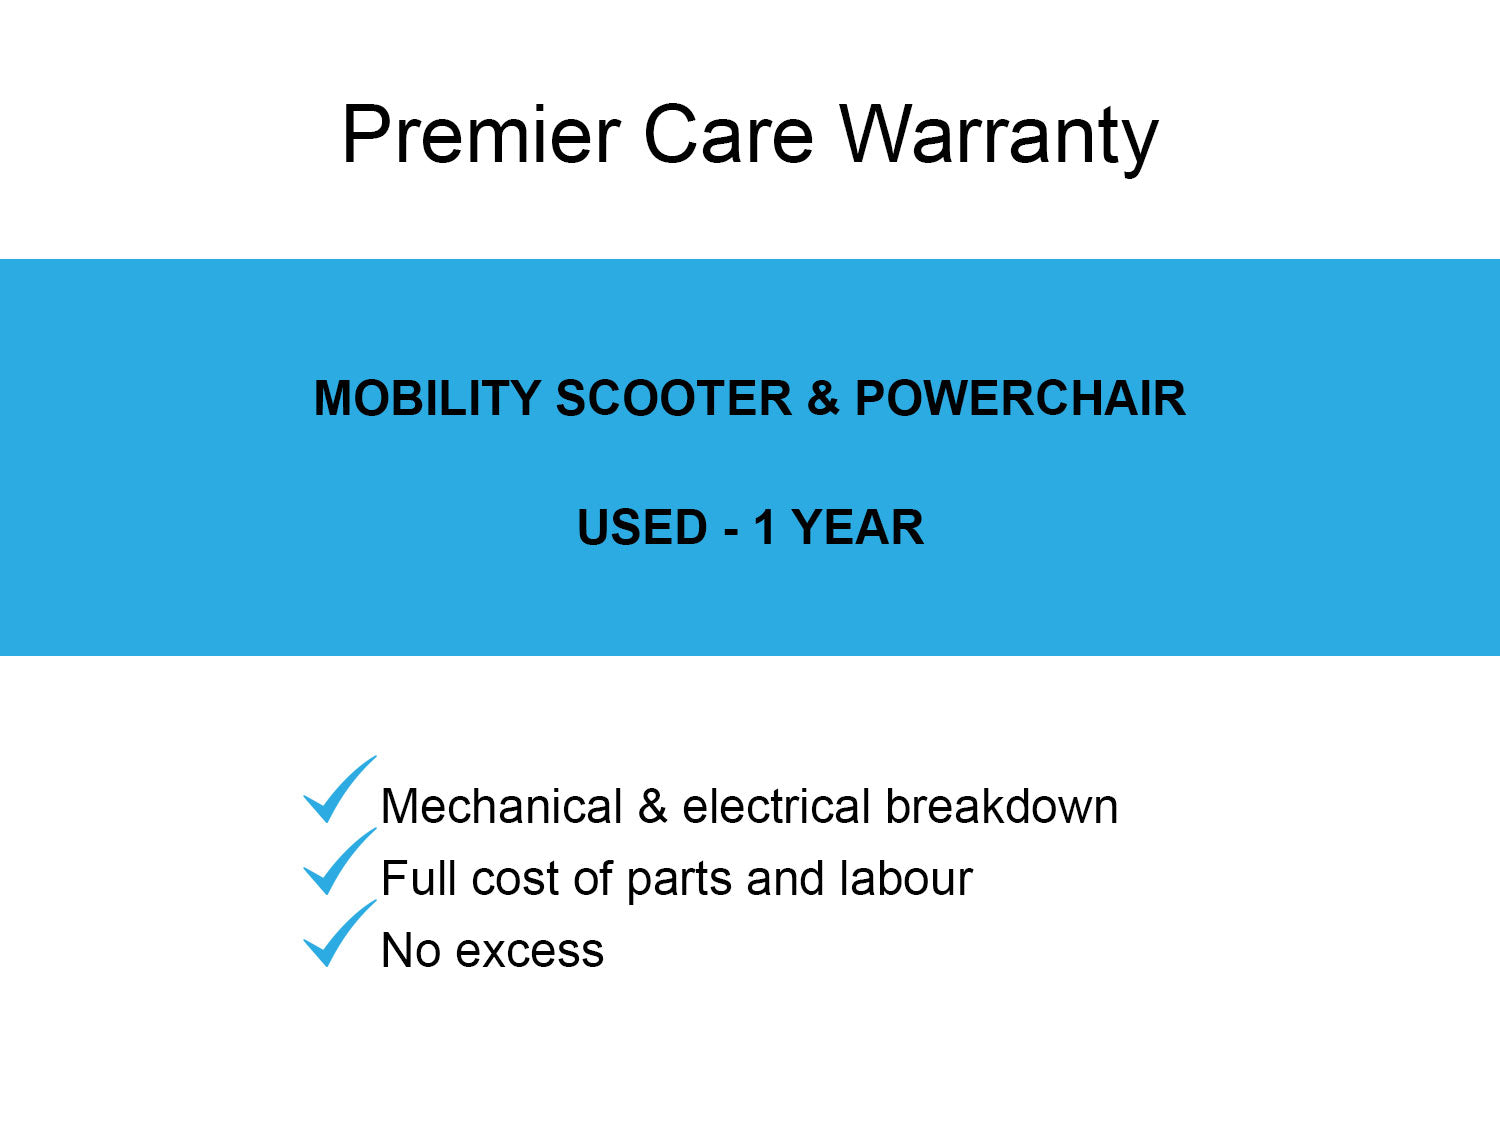 Mobility Scooter - Powerchair Extended Warranty (used)